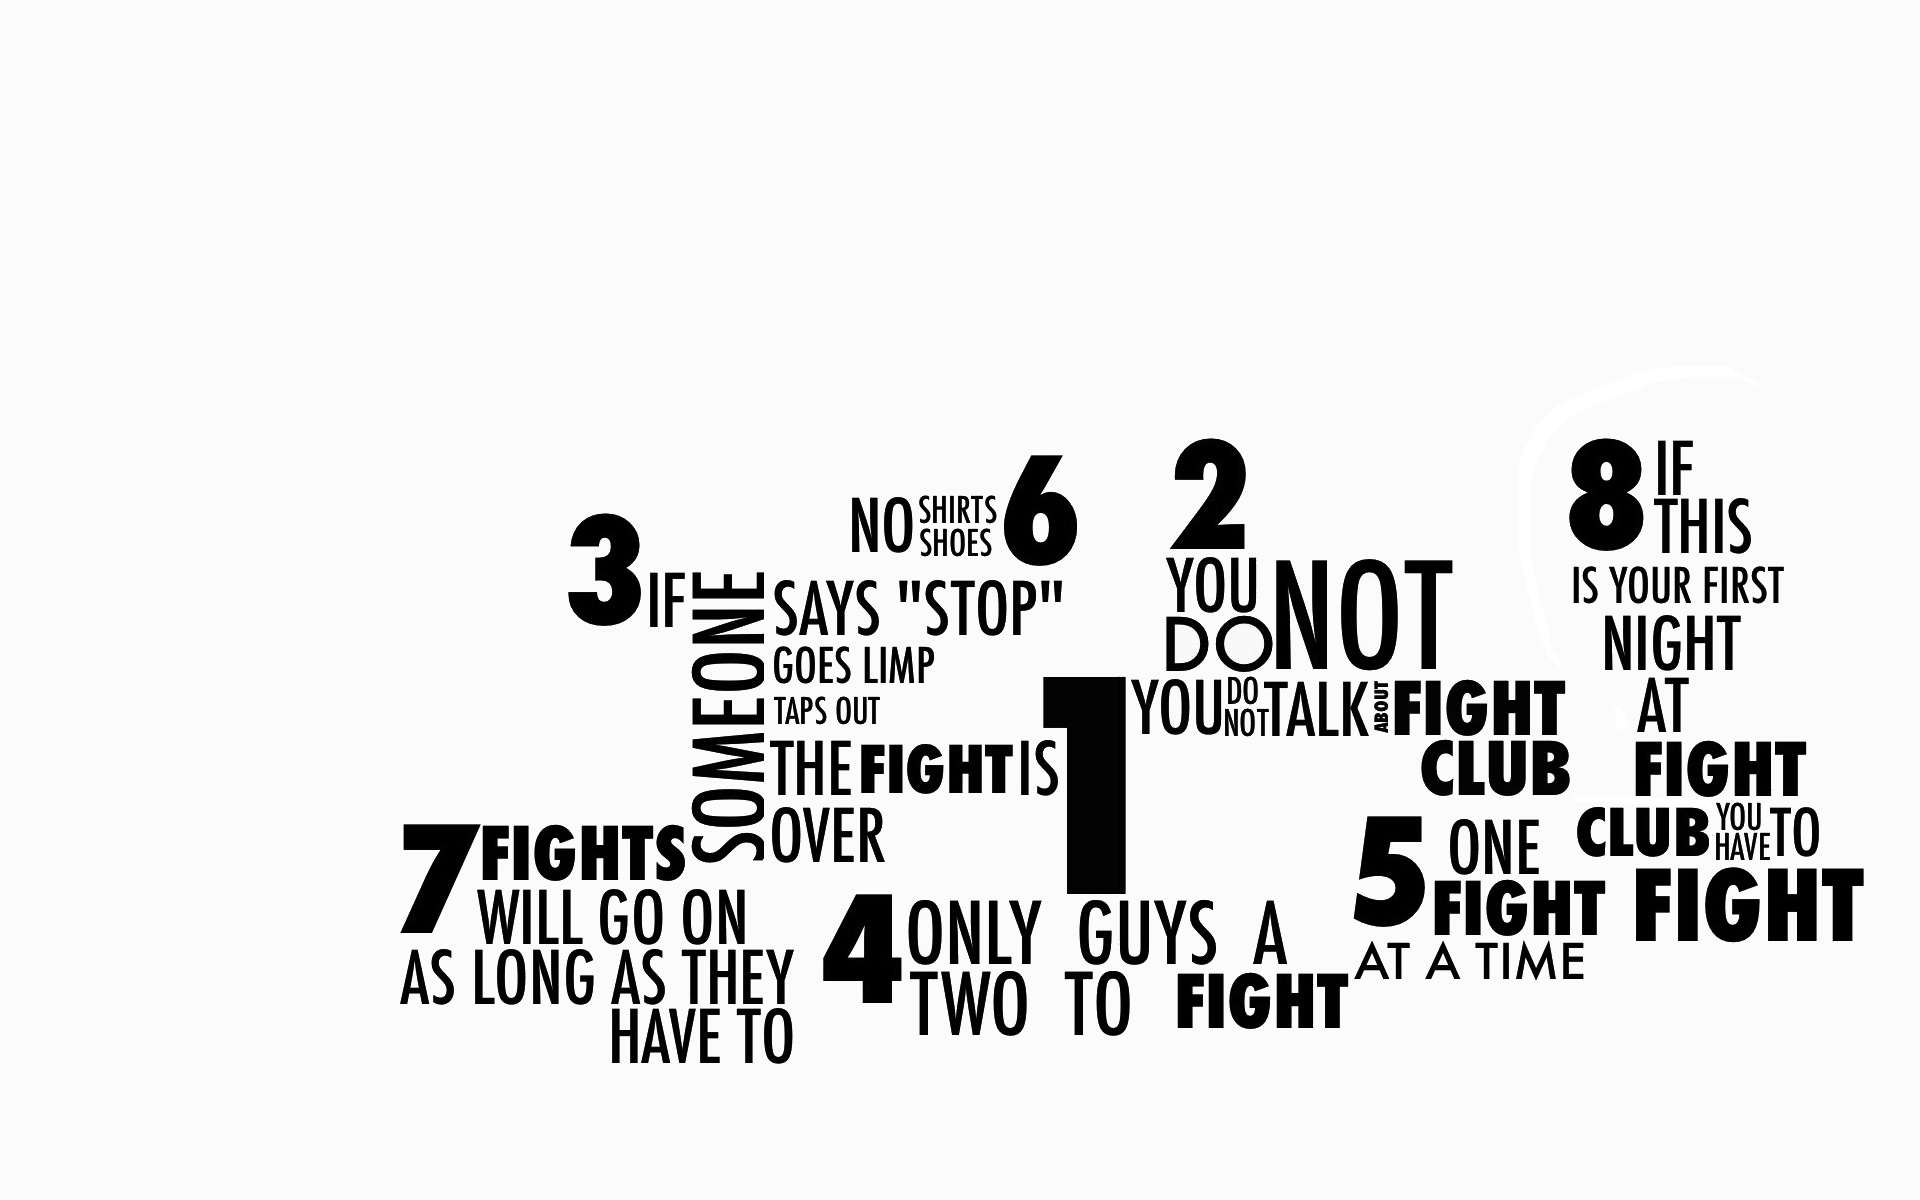 Fight Club Rules Fondo De Pantalla Hd Fondo De Escritorio